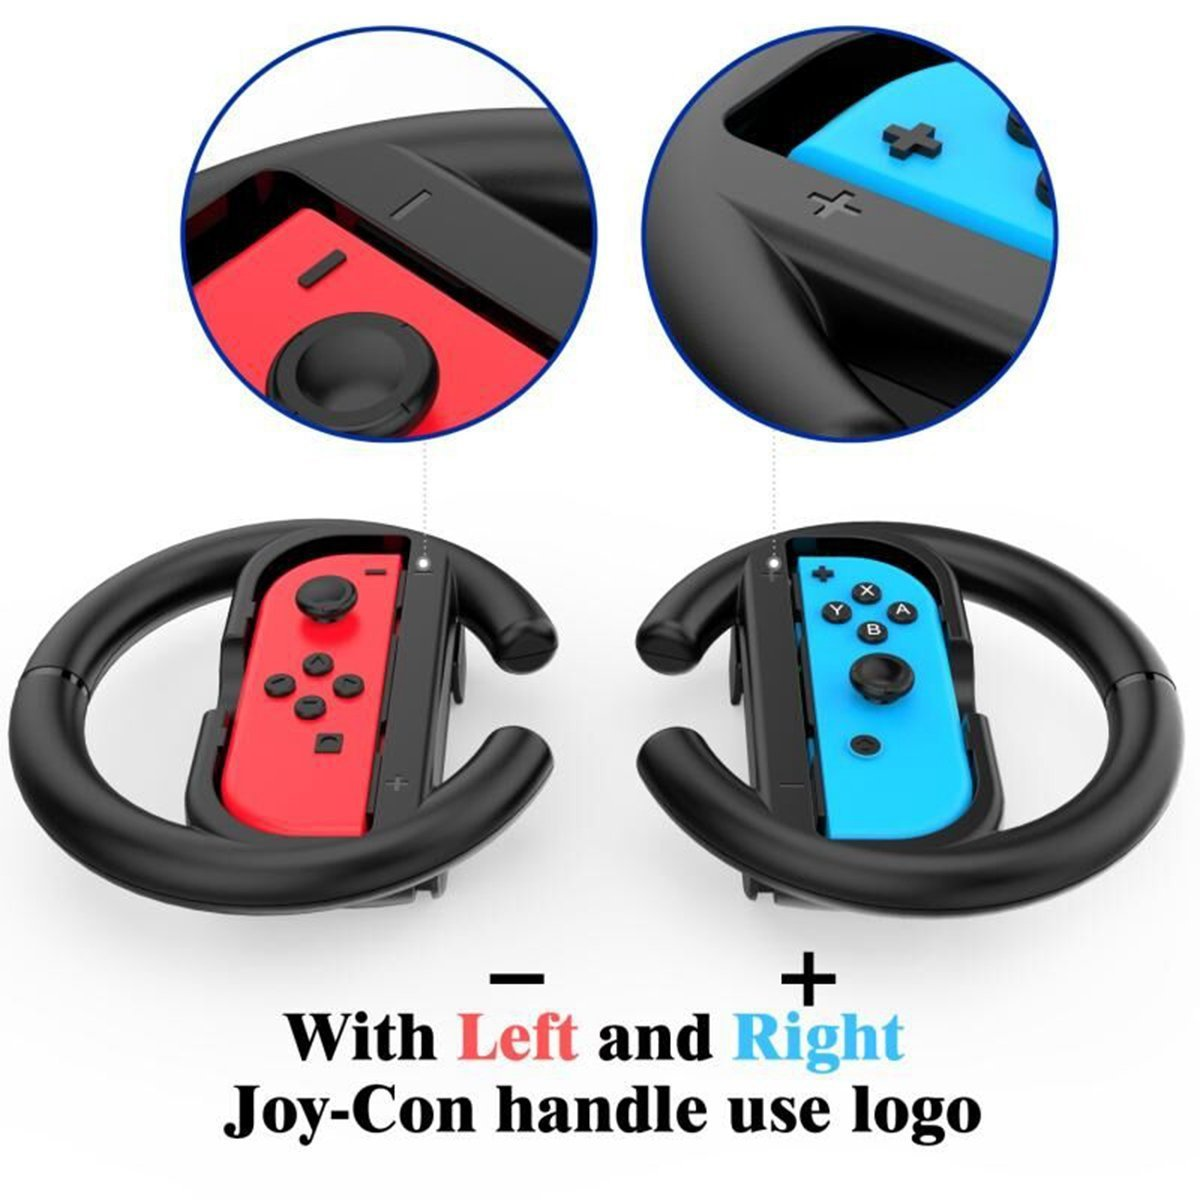 Steering Wheel Grips for Nintendo Switch Console Racing Wheel Joy-con Grips Handle Set by Lammcou for Nintendo Switch Controller Games-Black